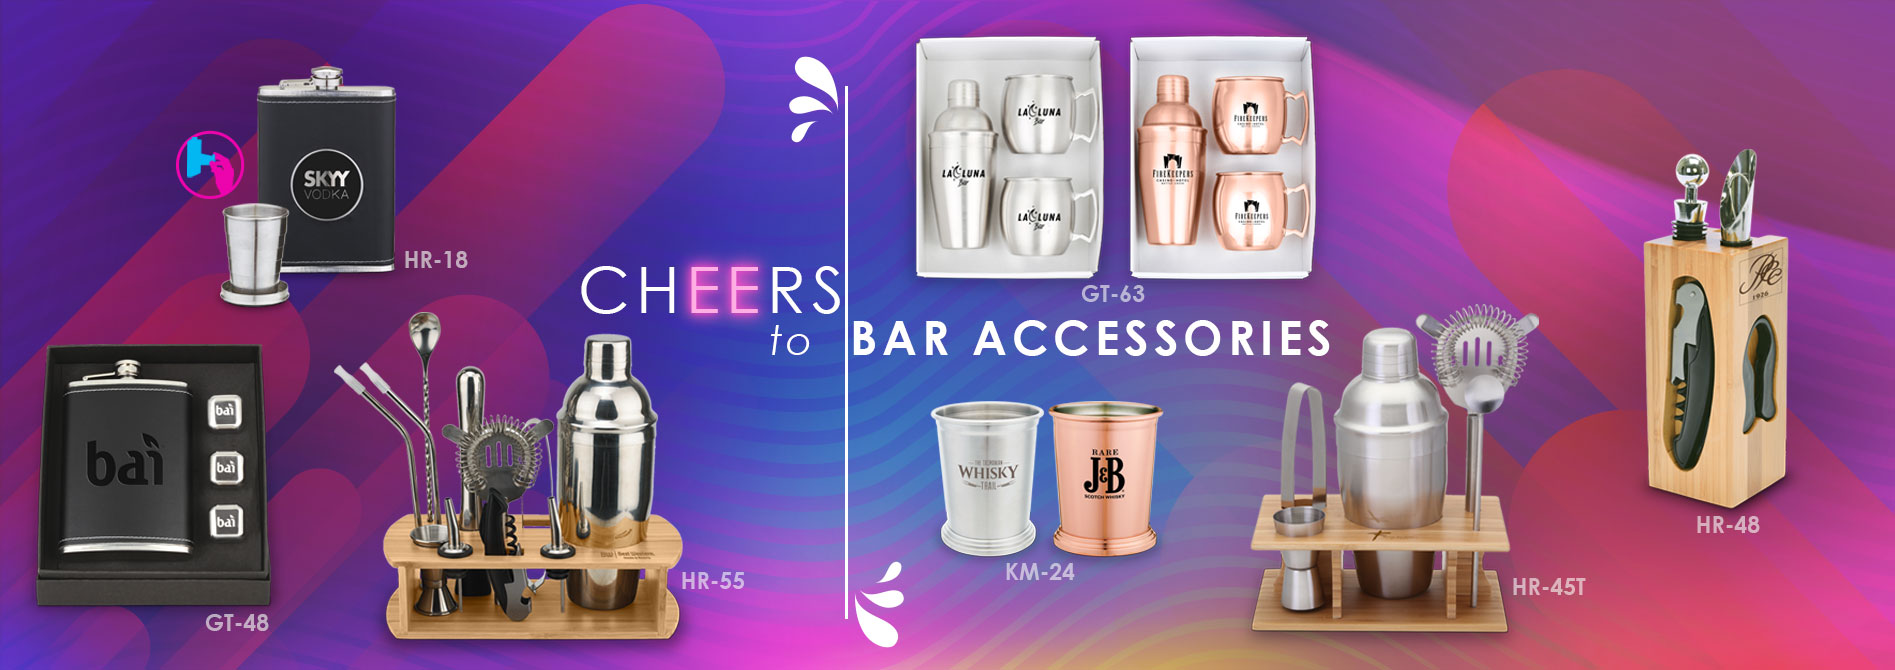 Cheers to Bar Accessories